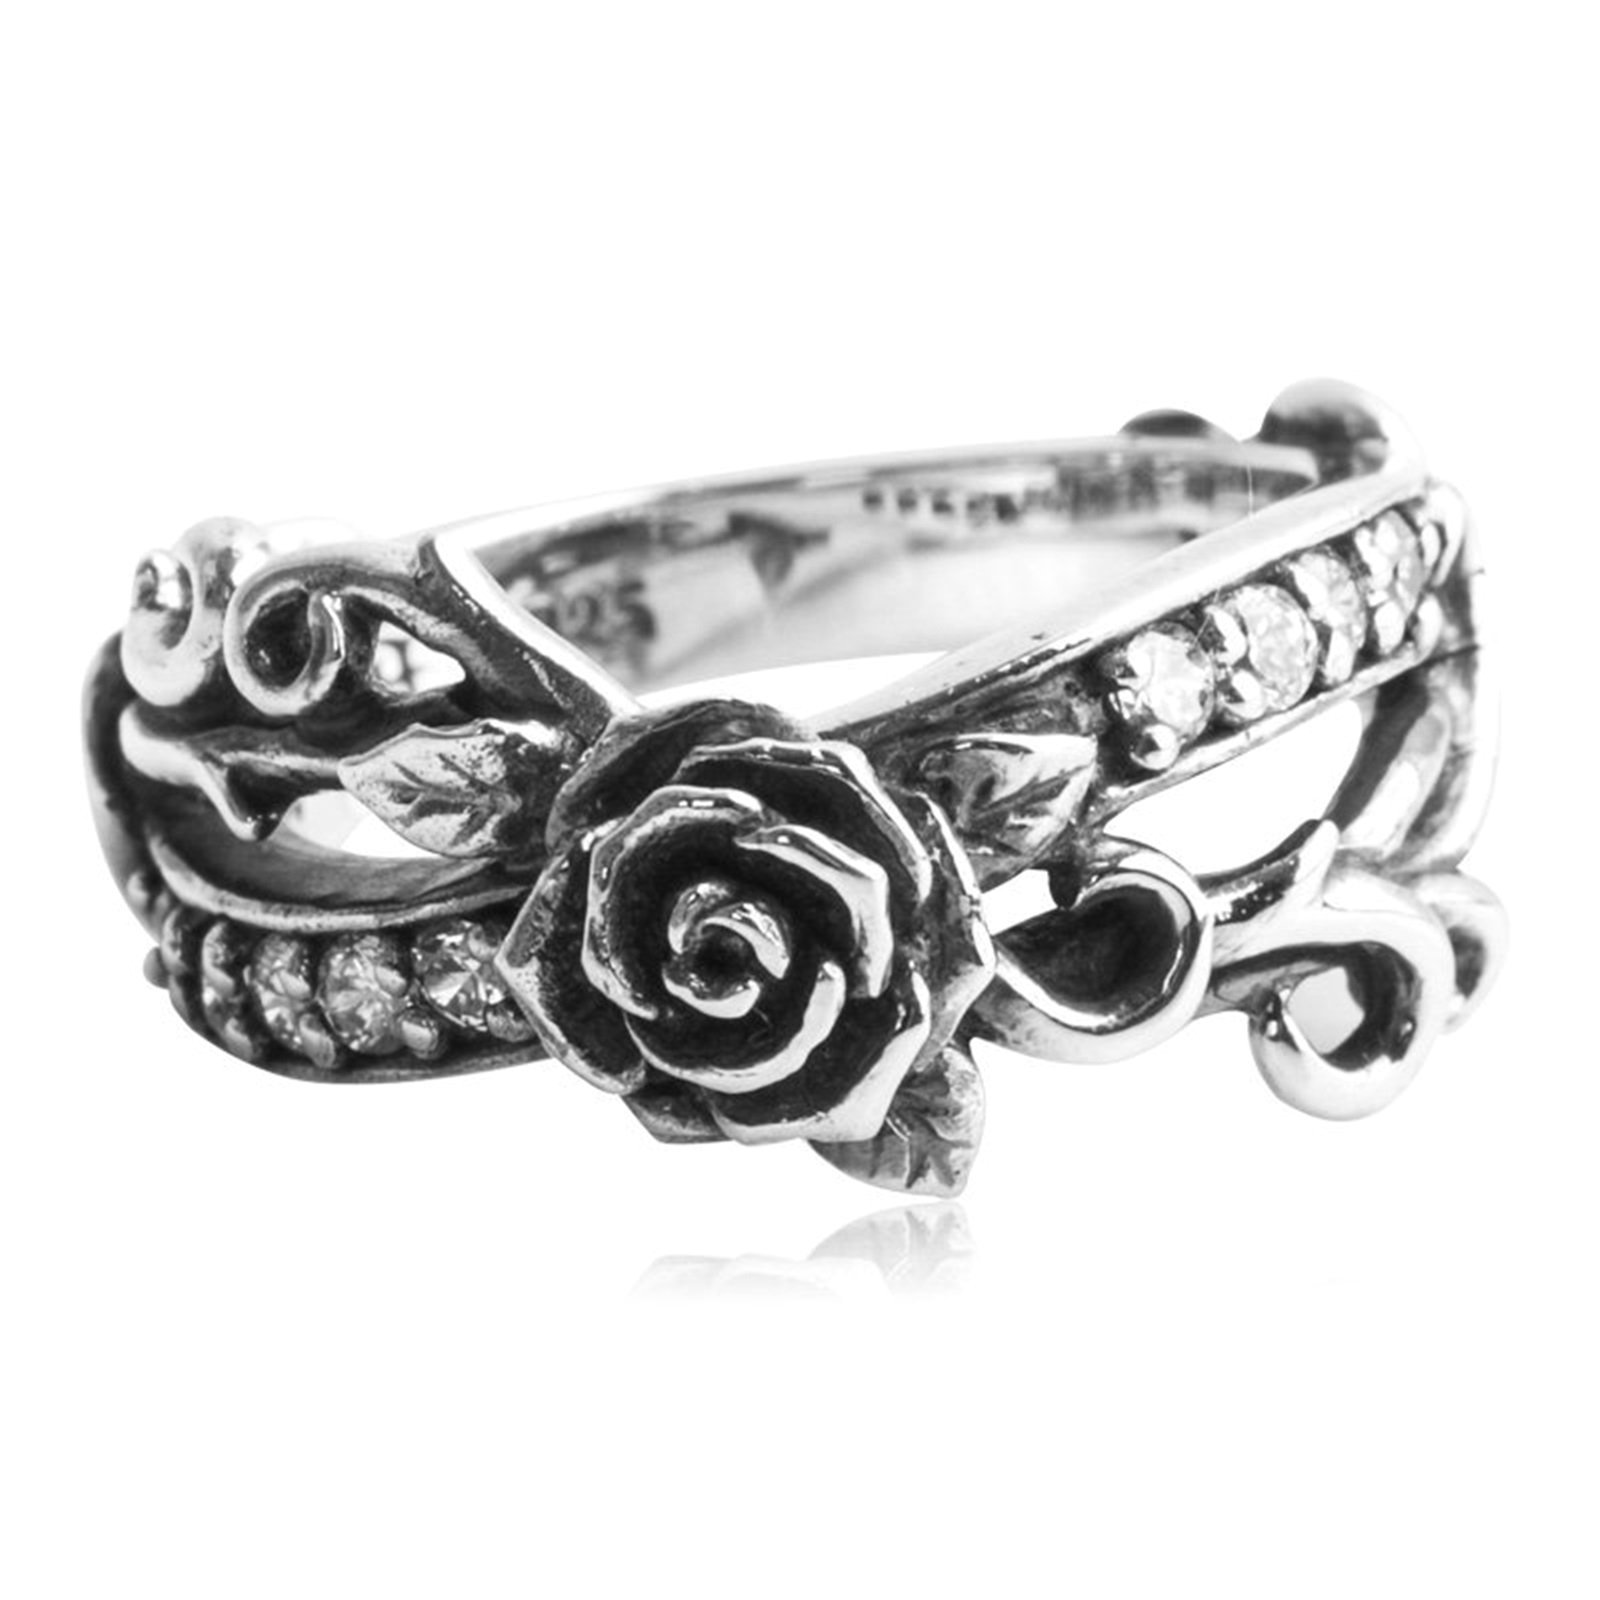 Epinki 925 Sterling Silver Punk Rock Vintage Gothic Rose Flower Ring Cubic Zirconia for Women Size 7 by Epinki